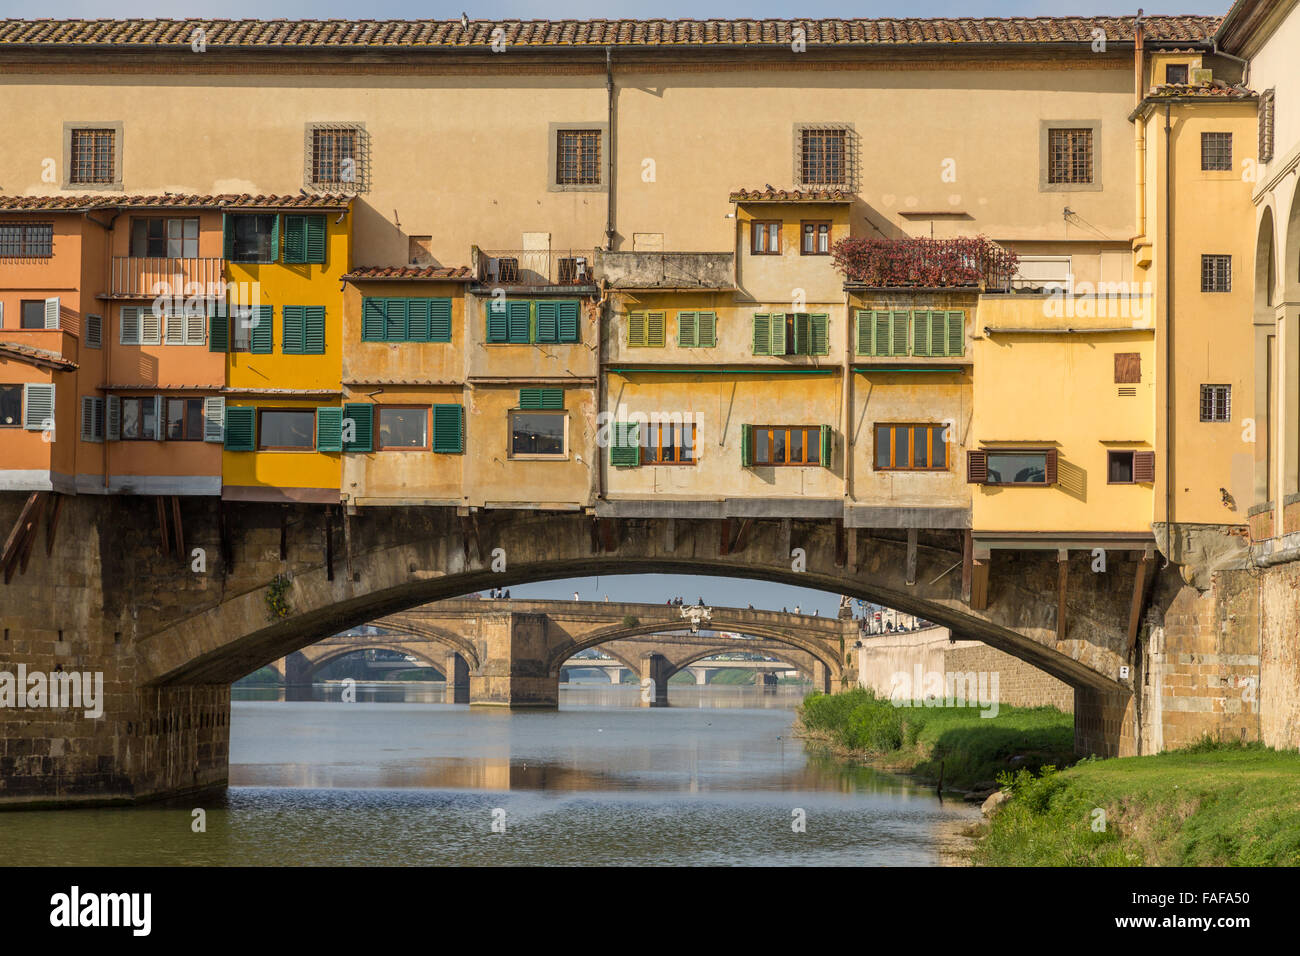 Ponte Vecchio and Arno River, behind other Bridges, Florence, Tuscany, Italy - Stock Image